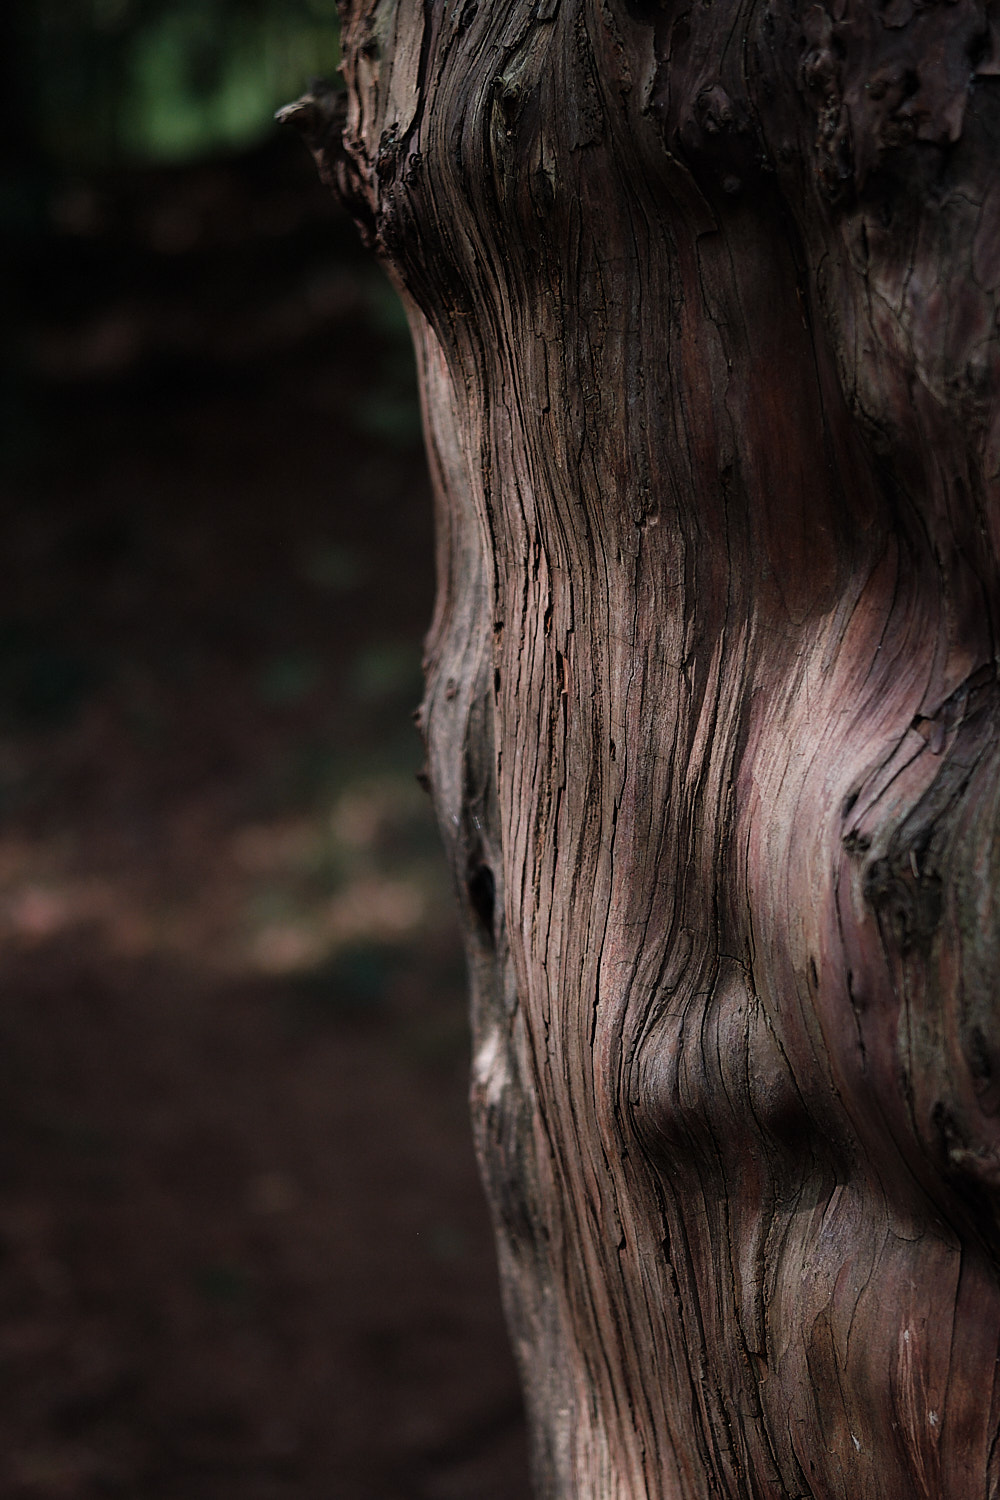 close up of a yew's wood